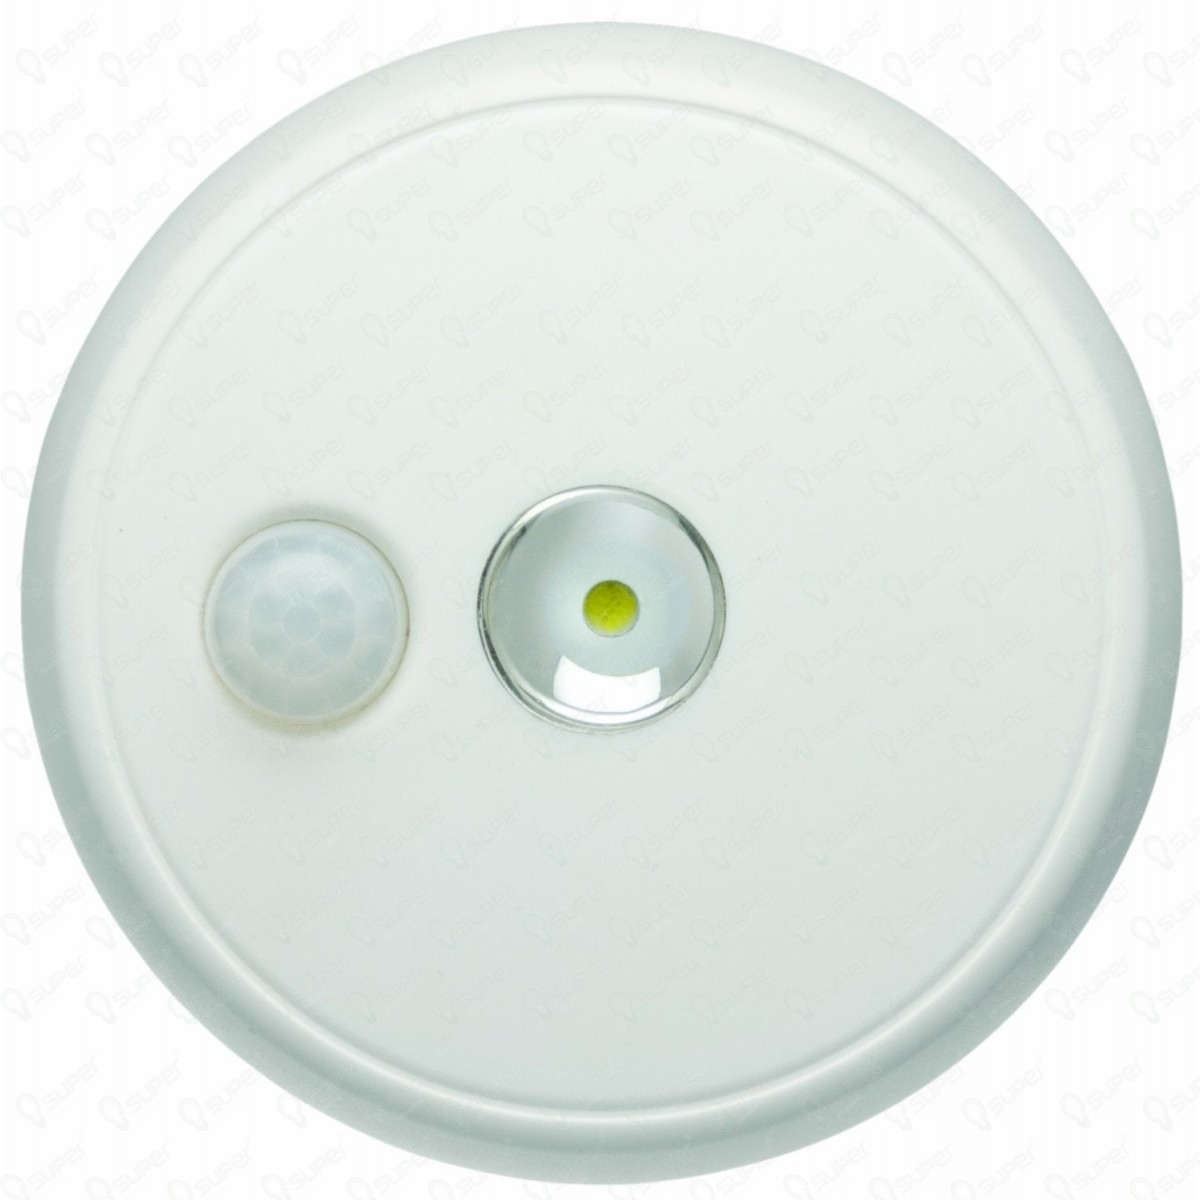 Outdoor Ceiling Lighting The Home Depot Mattress Toppers Dining Inside Outdoor Ceiling Motion Sensor Lights (#8 of 15)